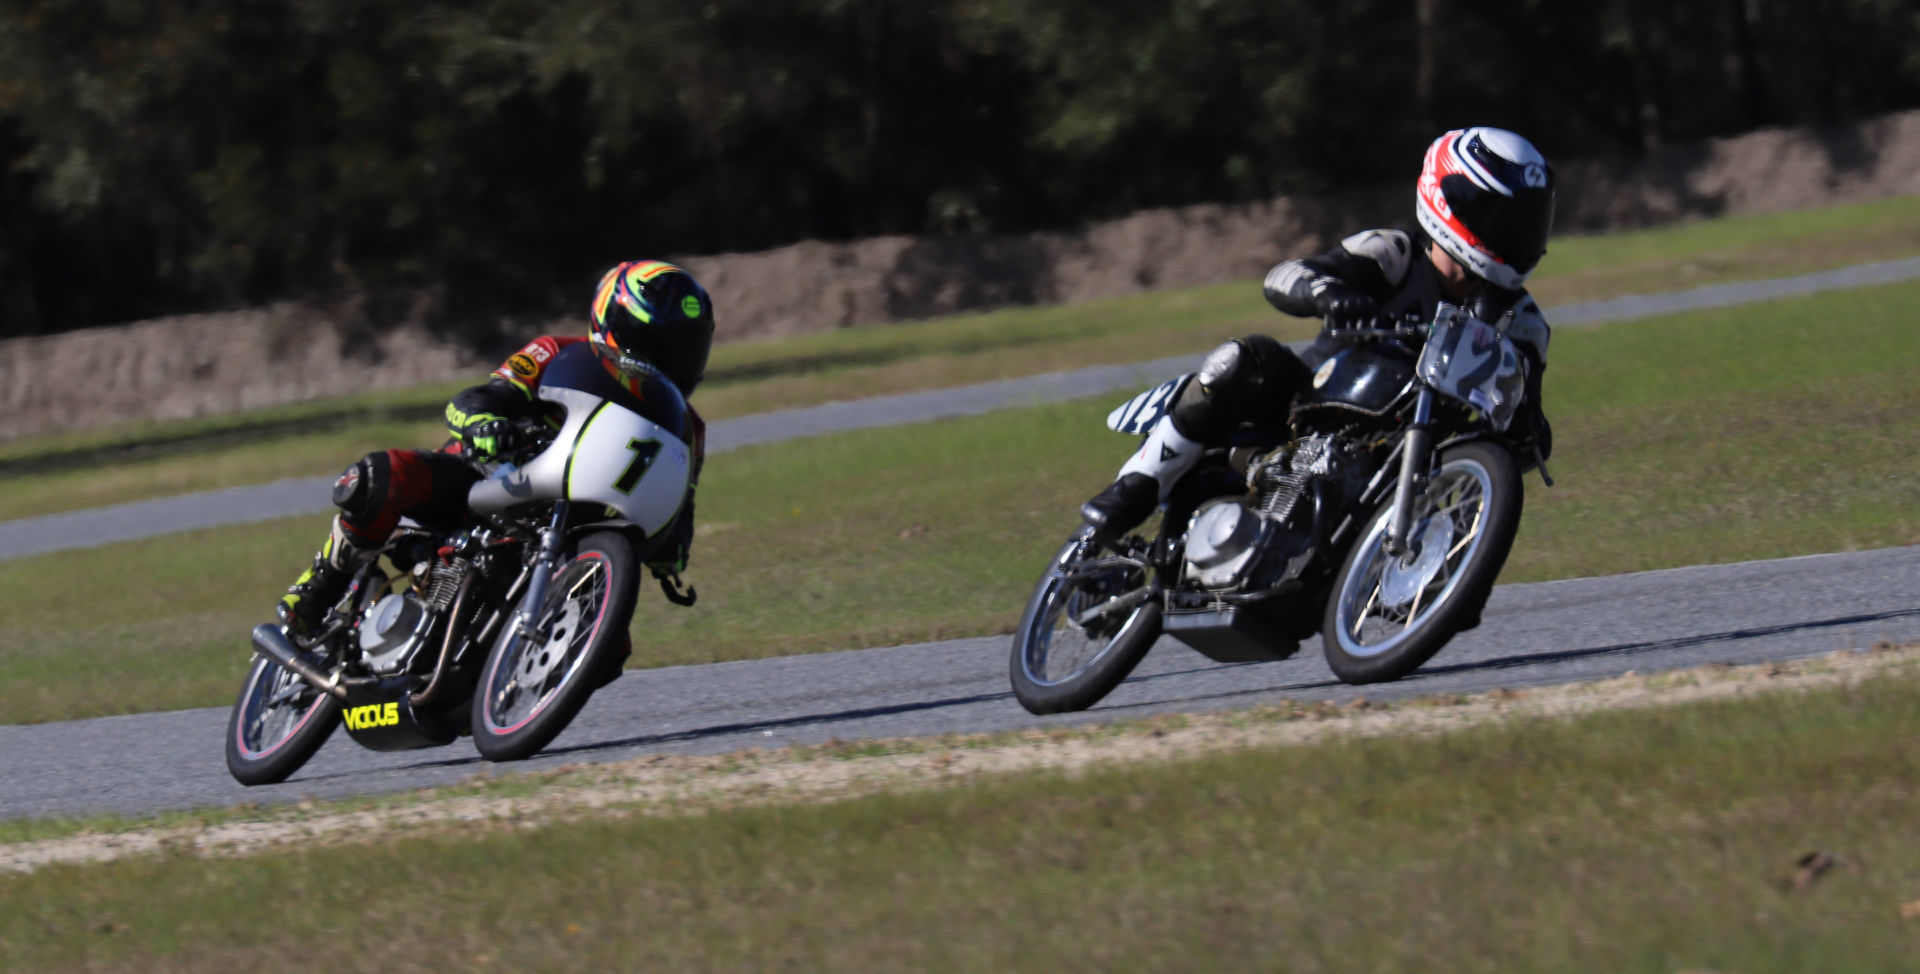 Jonas Stein (123) leads Greg Glevicky (1) during an AHRMA race at Roebling Road Raceway. Photo by etechphoto.com, courtesy of AHRMA.